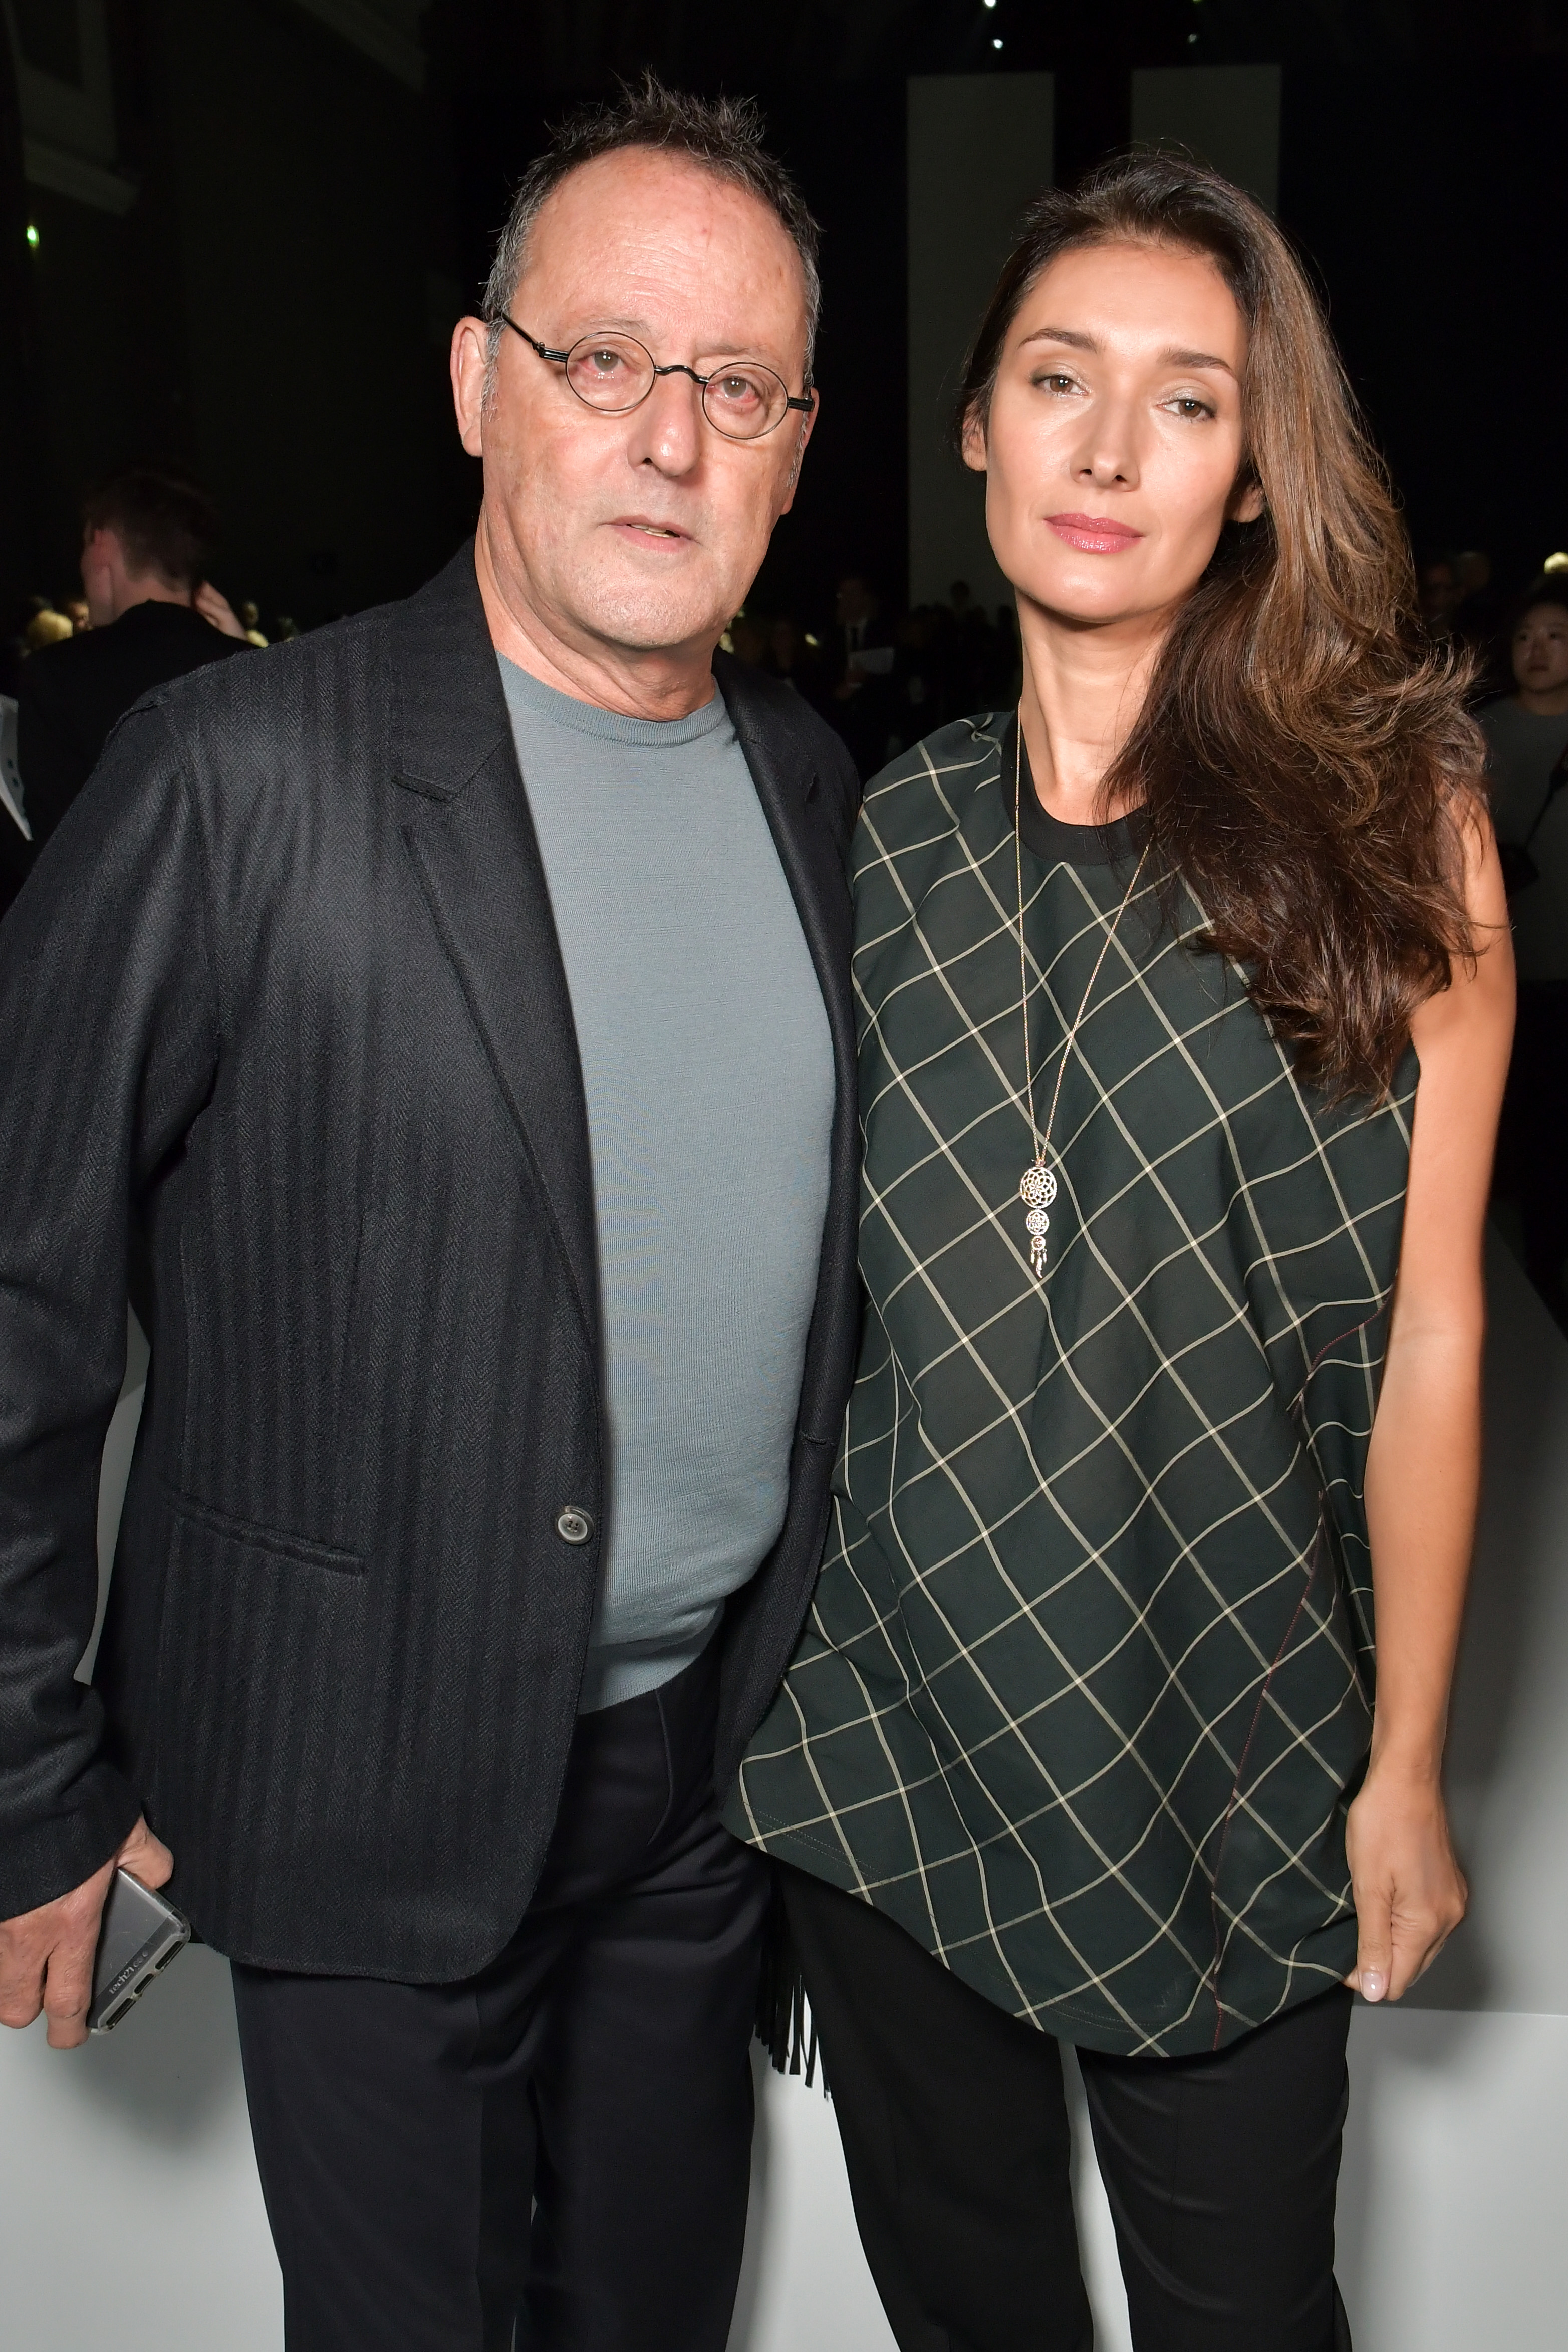 Jean Reno and Zofia Borucka in the front rowLanvin show, Front Row, Spring Summer 2018, Paris Fashion Week, France - 27 Sep 2017